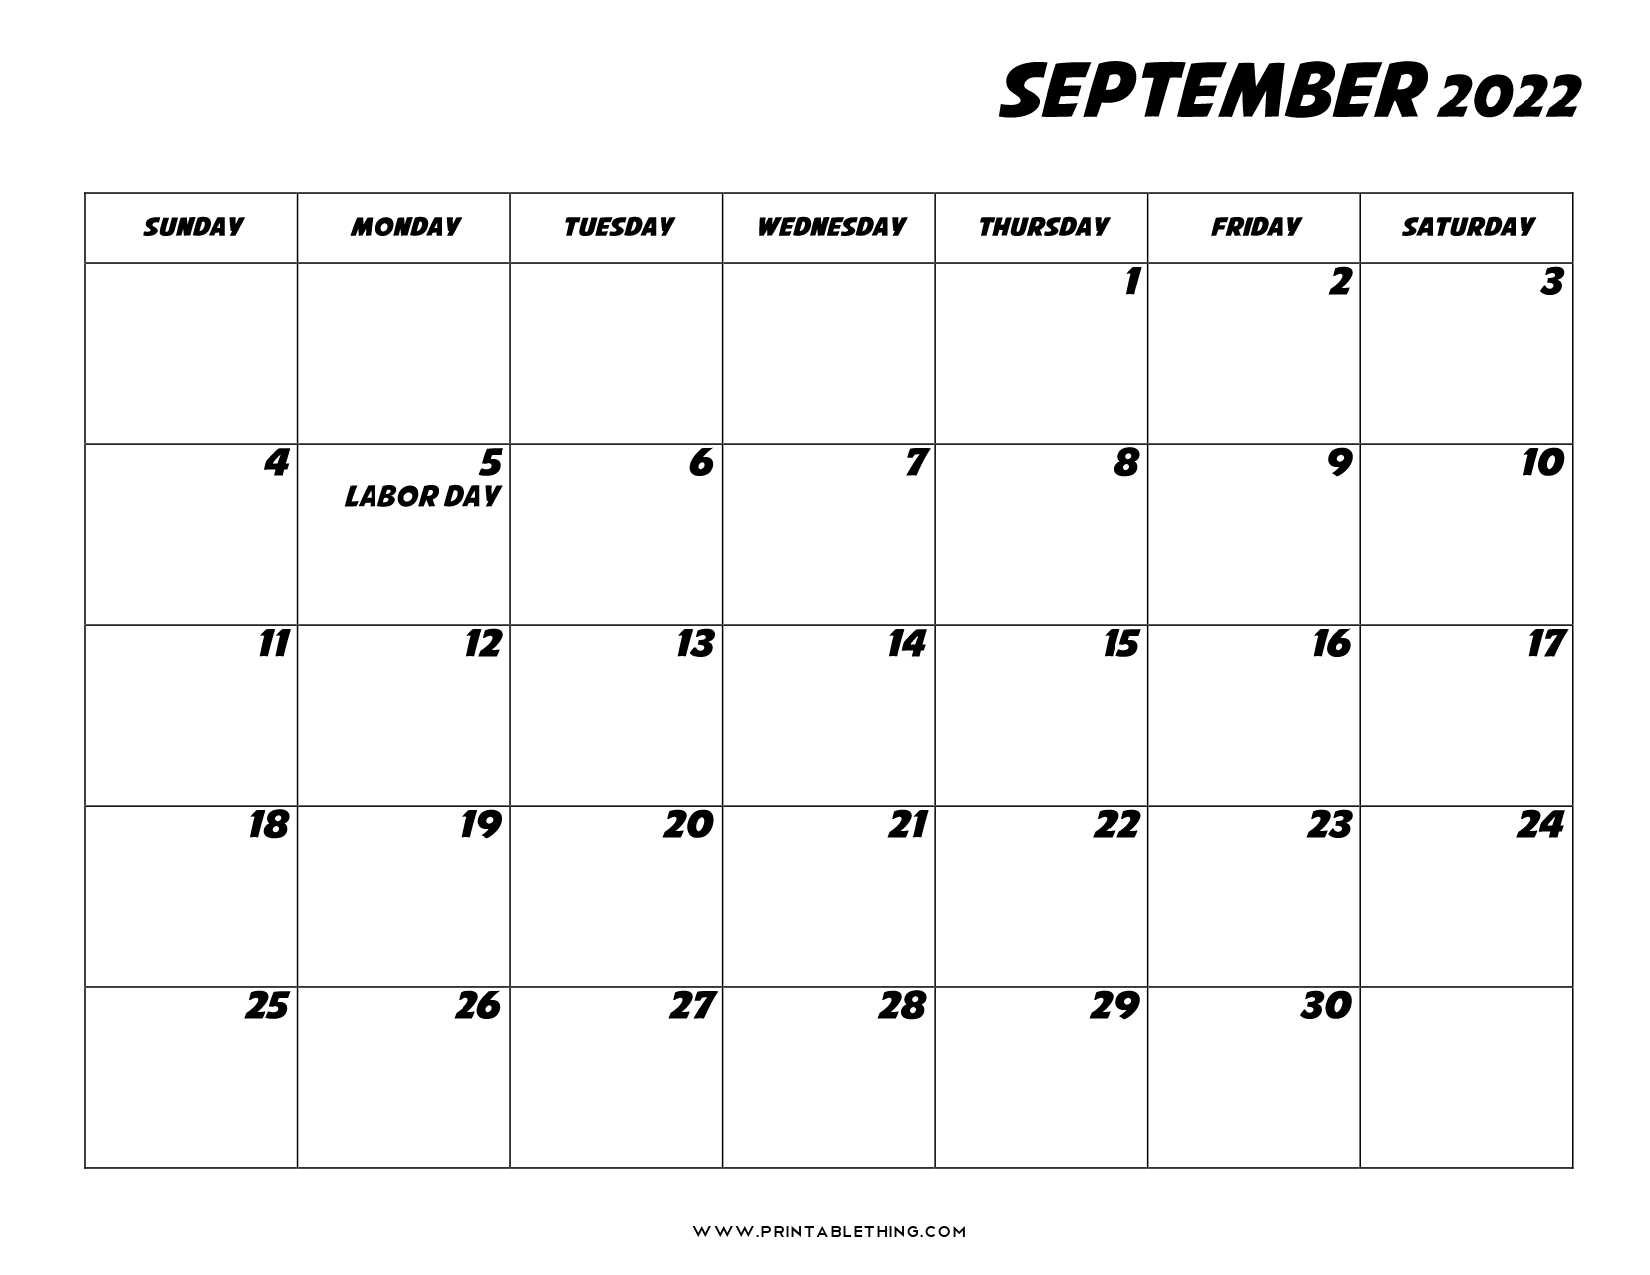 Download this portrait layout free july august september 2022 calendar printable 2021 quarterly calendar, each quarter in one page ( july august september 2022, october november december 2022, january february march 2022, april may june 2022 ) free july august september 2022 calendar download printable calendar free october november december 2022 calendar download printable calendar … 20+ September 2022 Calendar | Printable, PDF, US Holidays ...